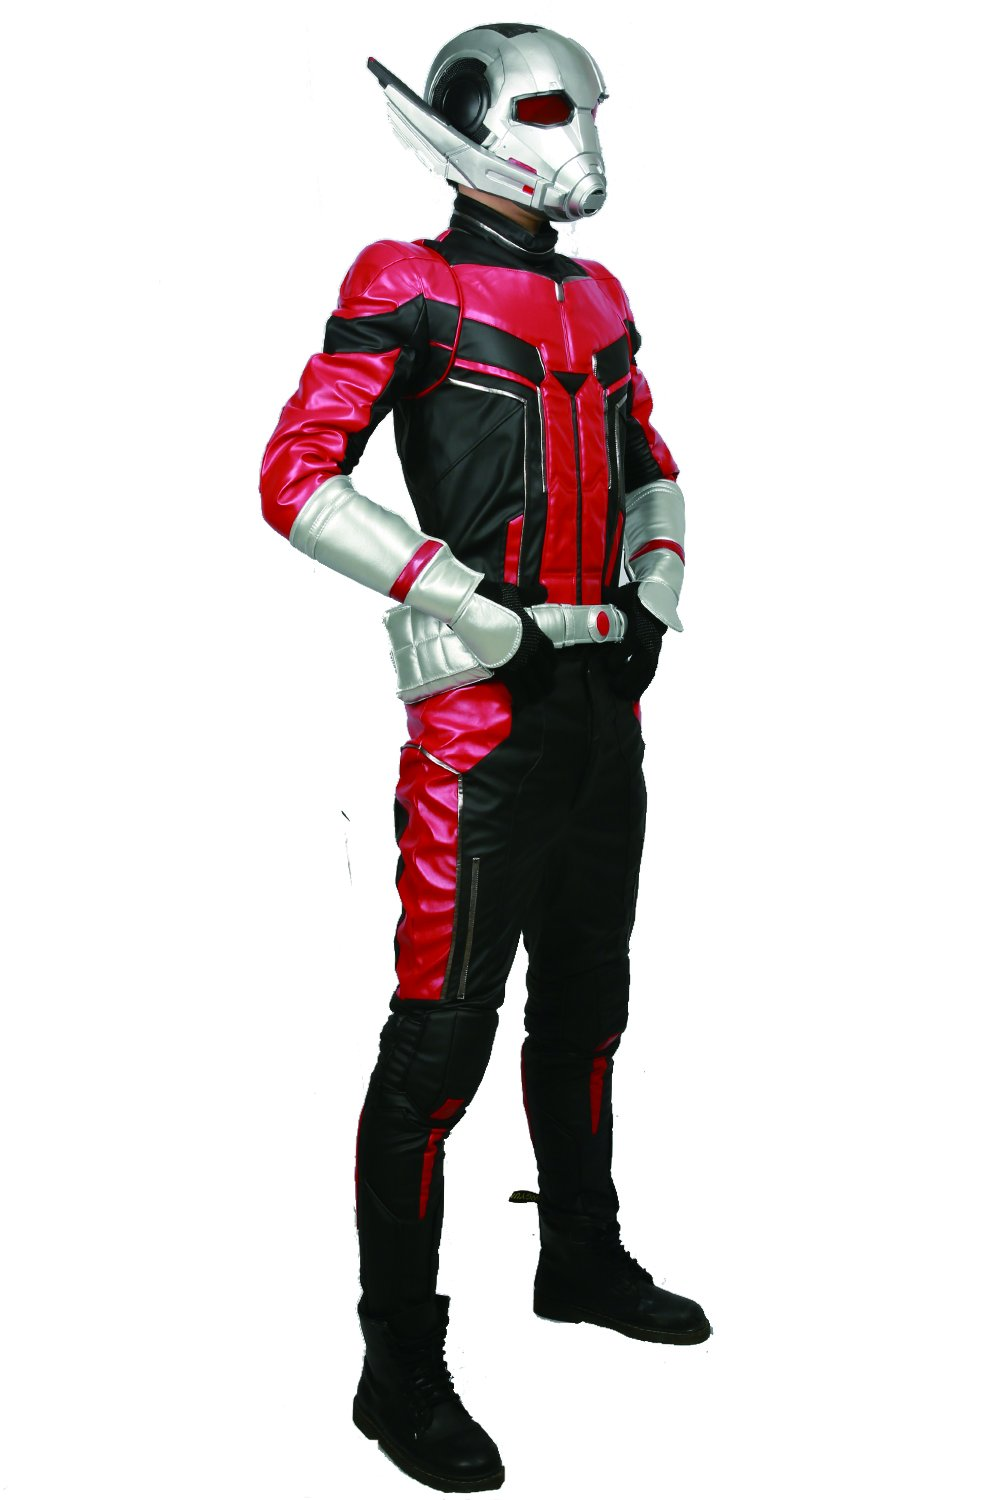 xcoser Ant Man Costume with Helmet Deluxe PU Cosplay Outfit Belt Gloves Full Suit Halloween Custom Made